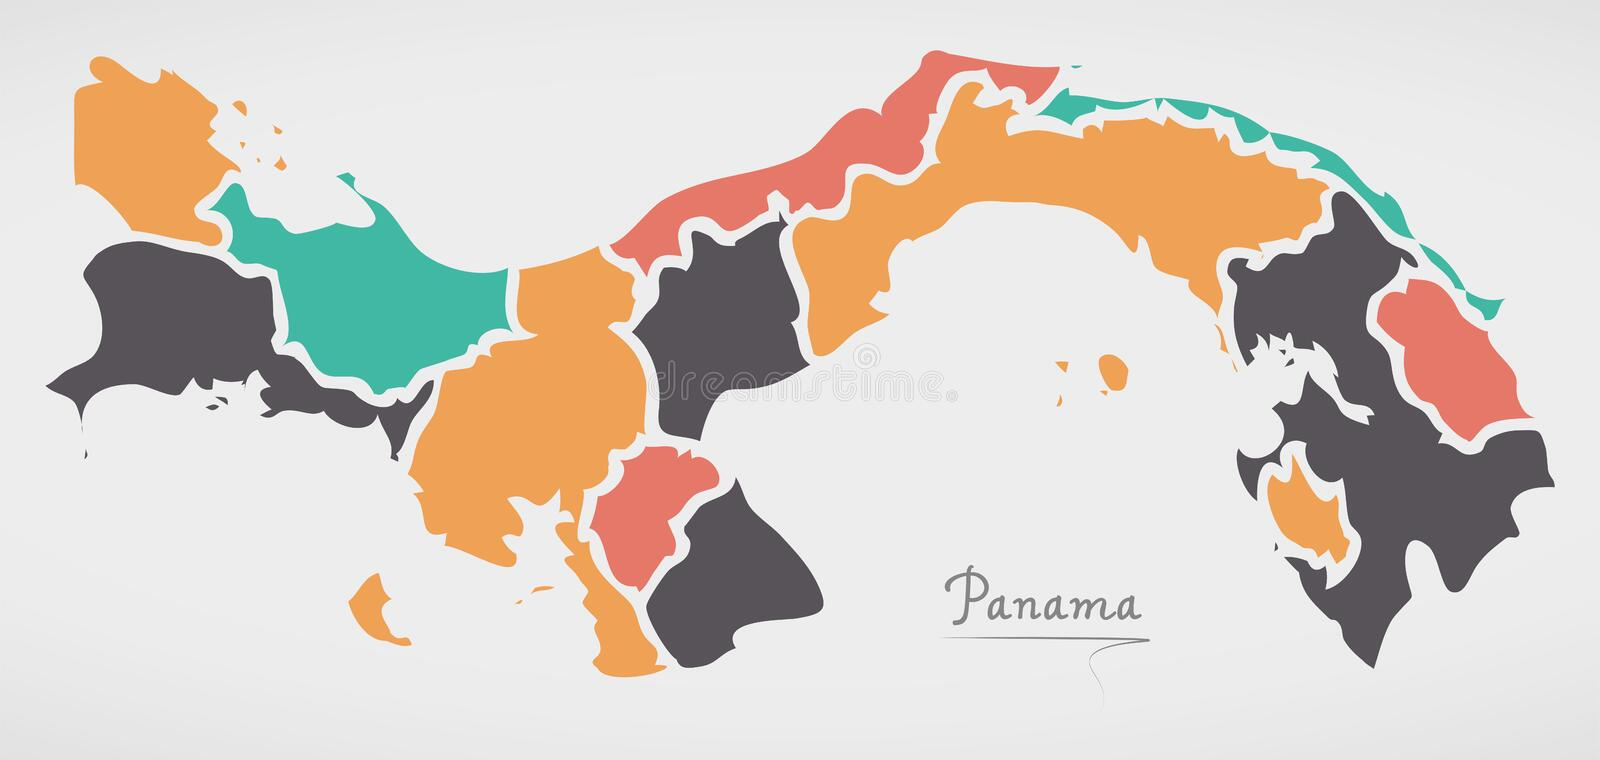 Panama Map with states and modern round shapes. Illustration royalty free illustration